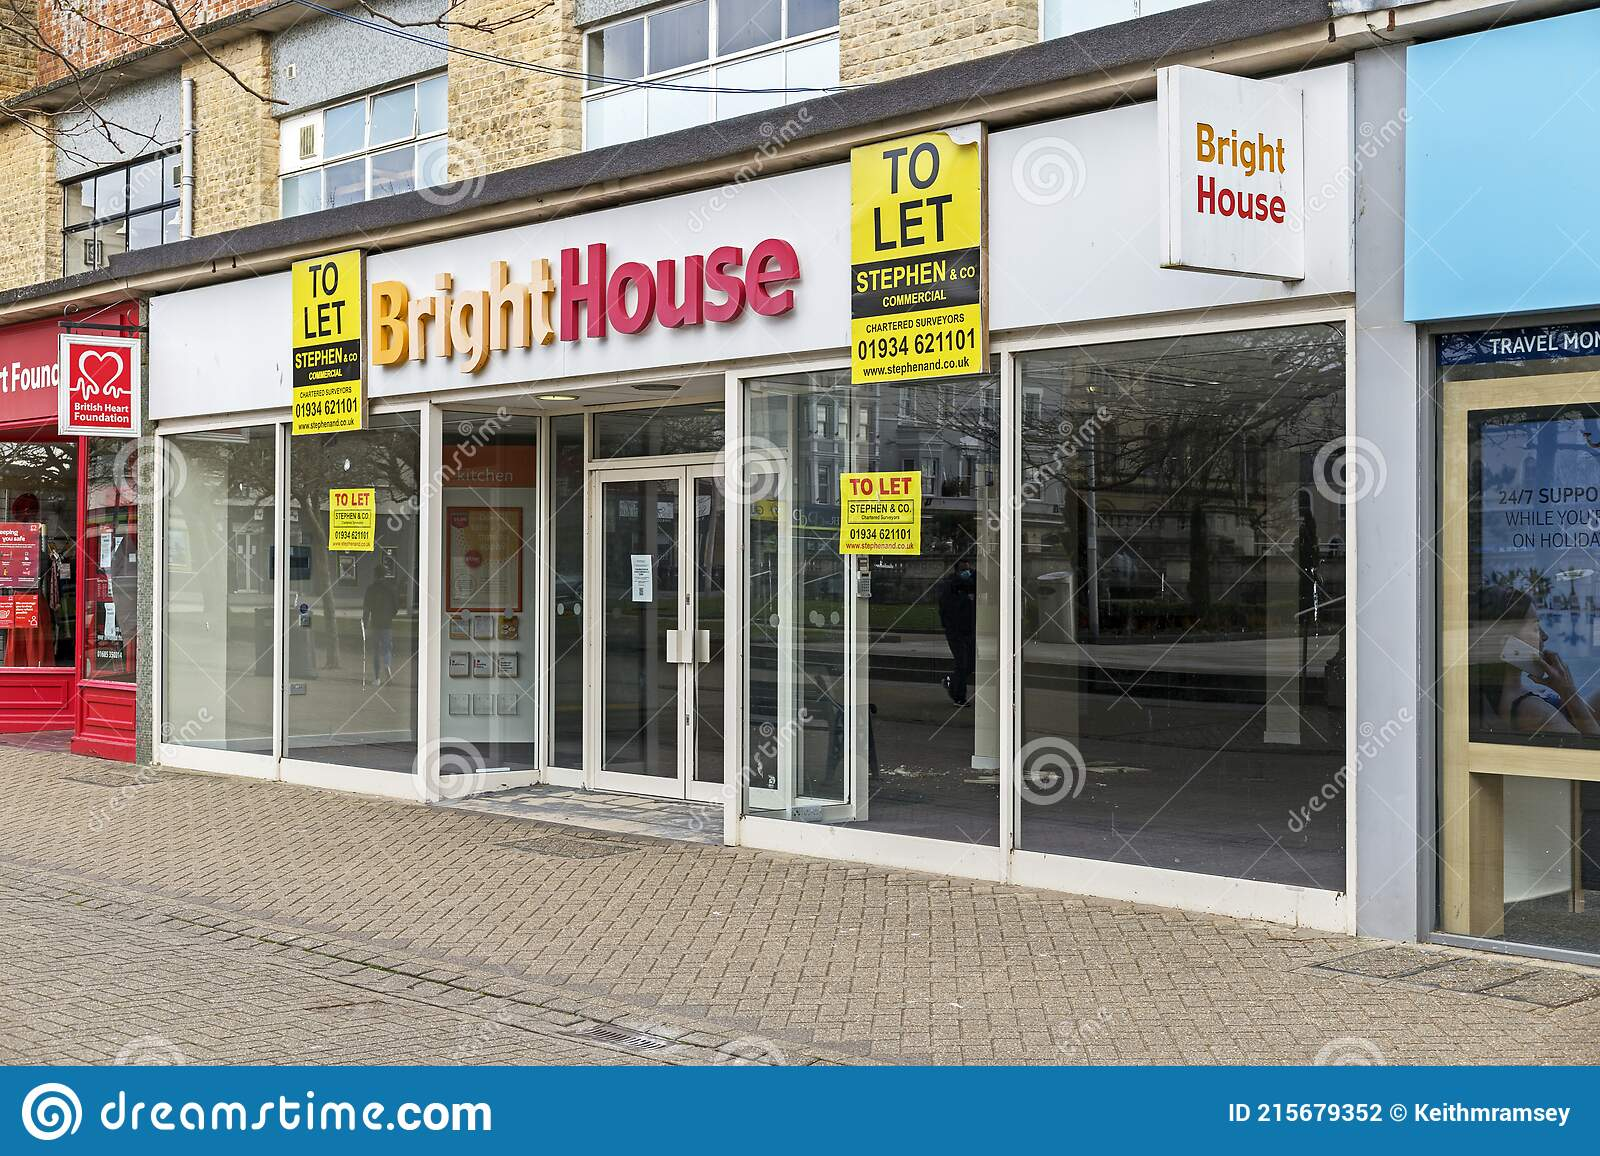 Weston Shop Photos Free Royalty Free Stock Photos From Dreamstime